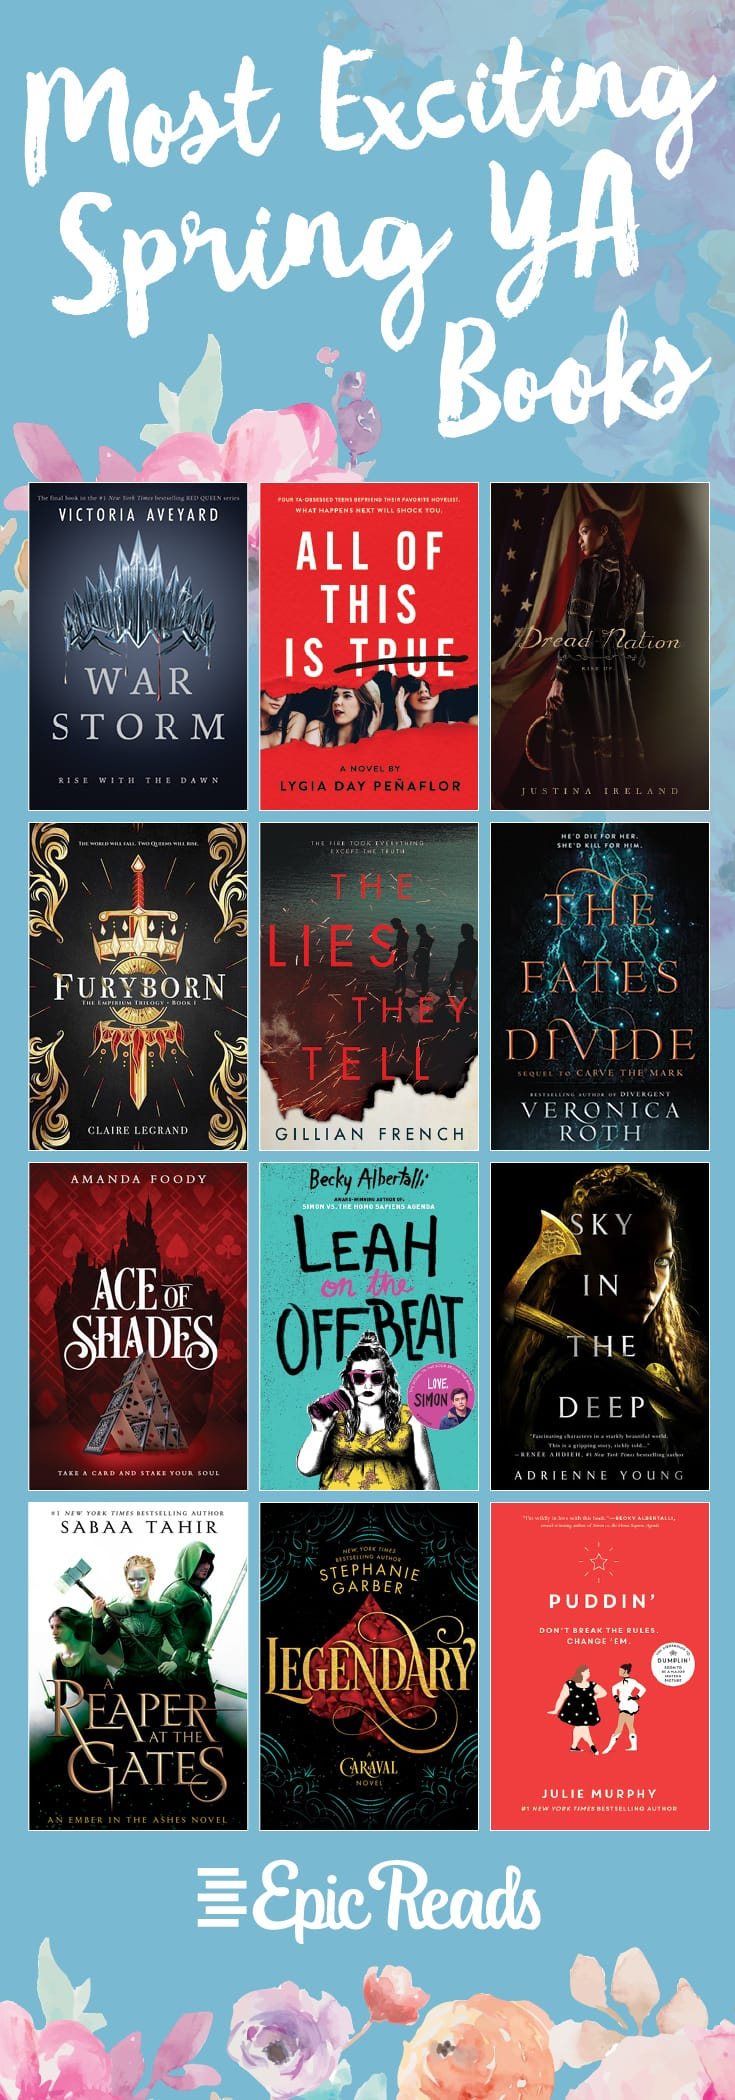 Most Exciting Spring YA Books